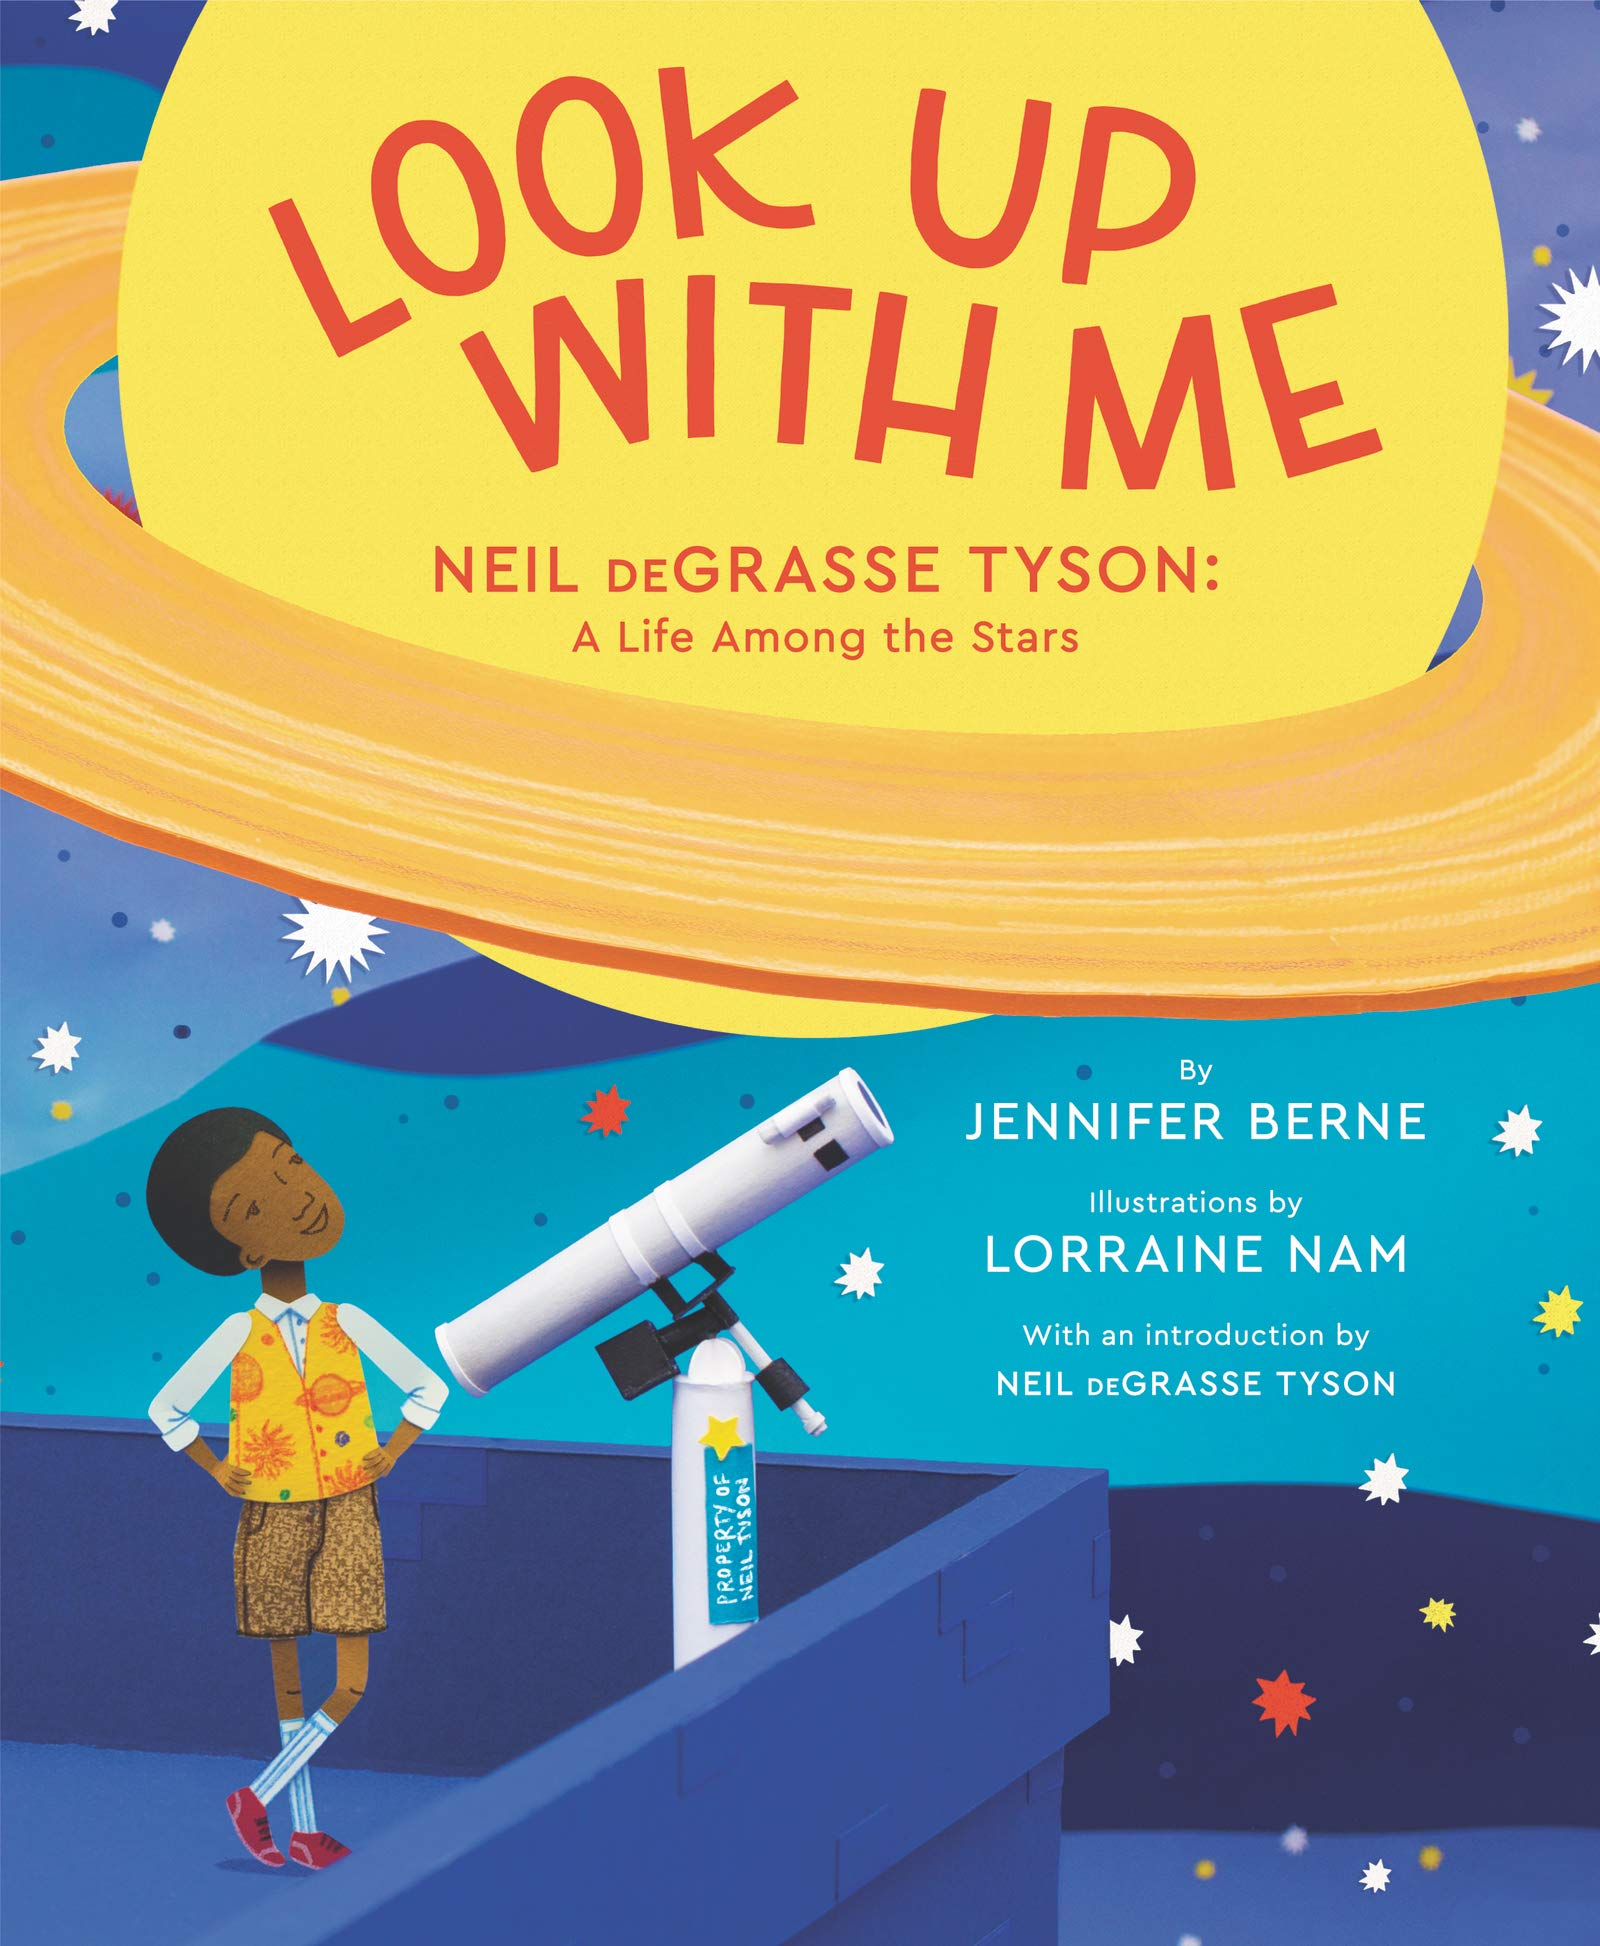 Look Up with Me Neil deGrasse Tyson A Life Among the Stars.jpg